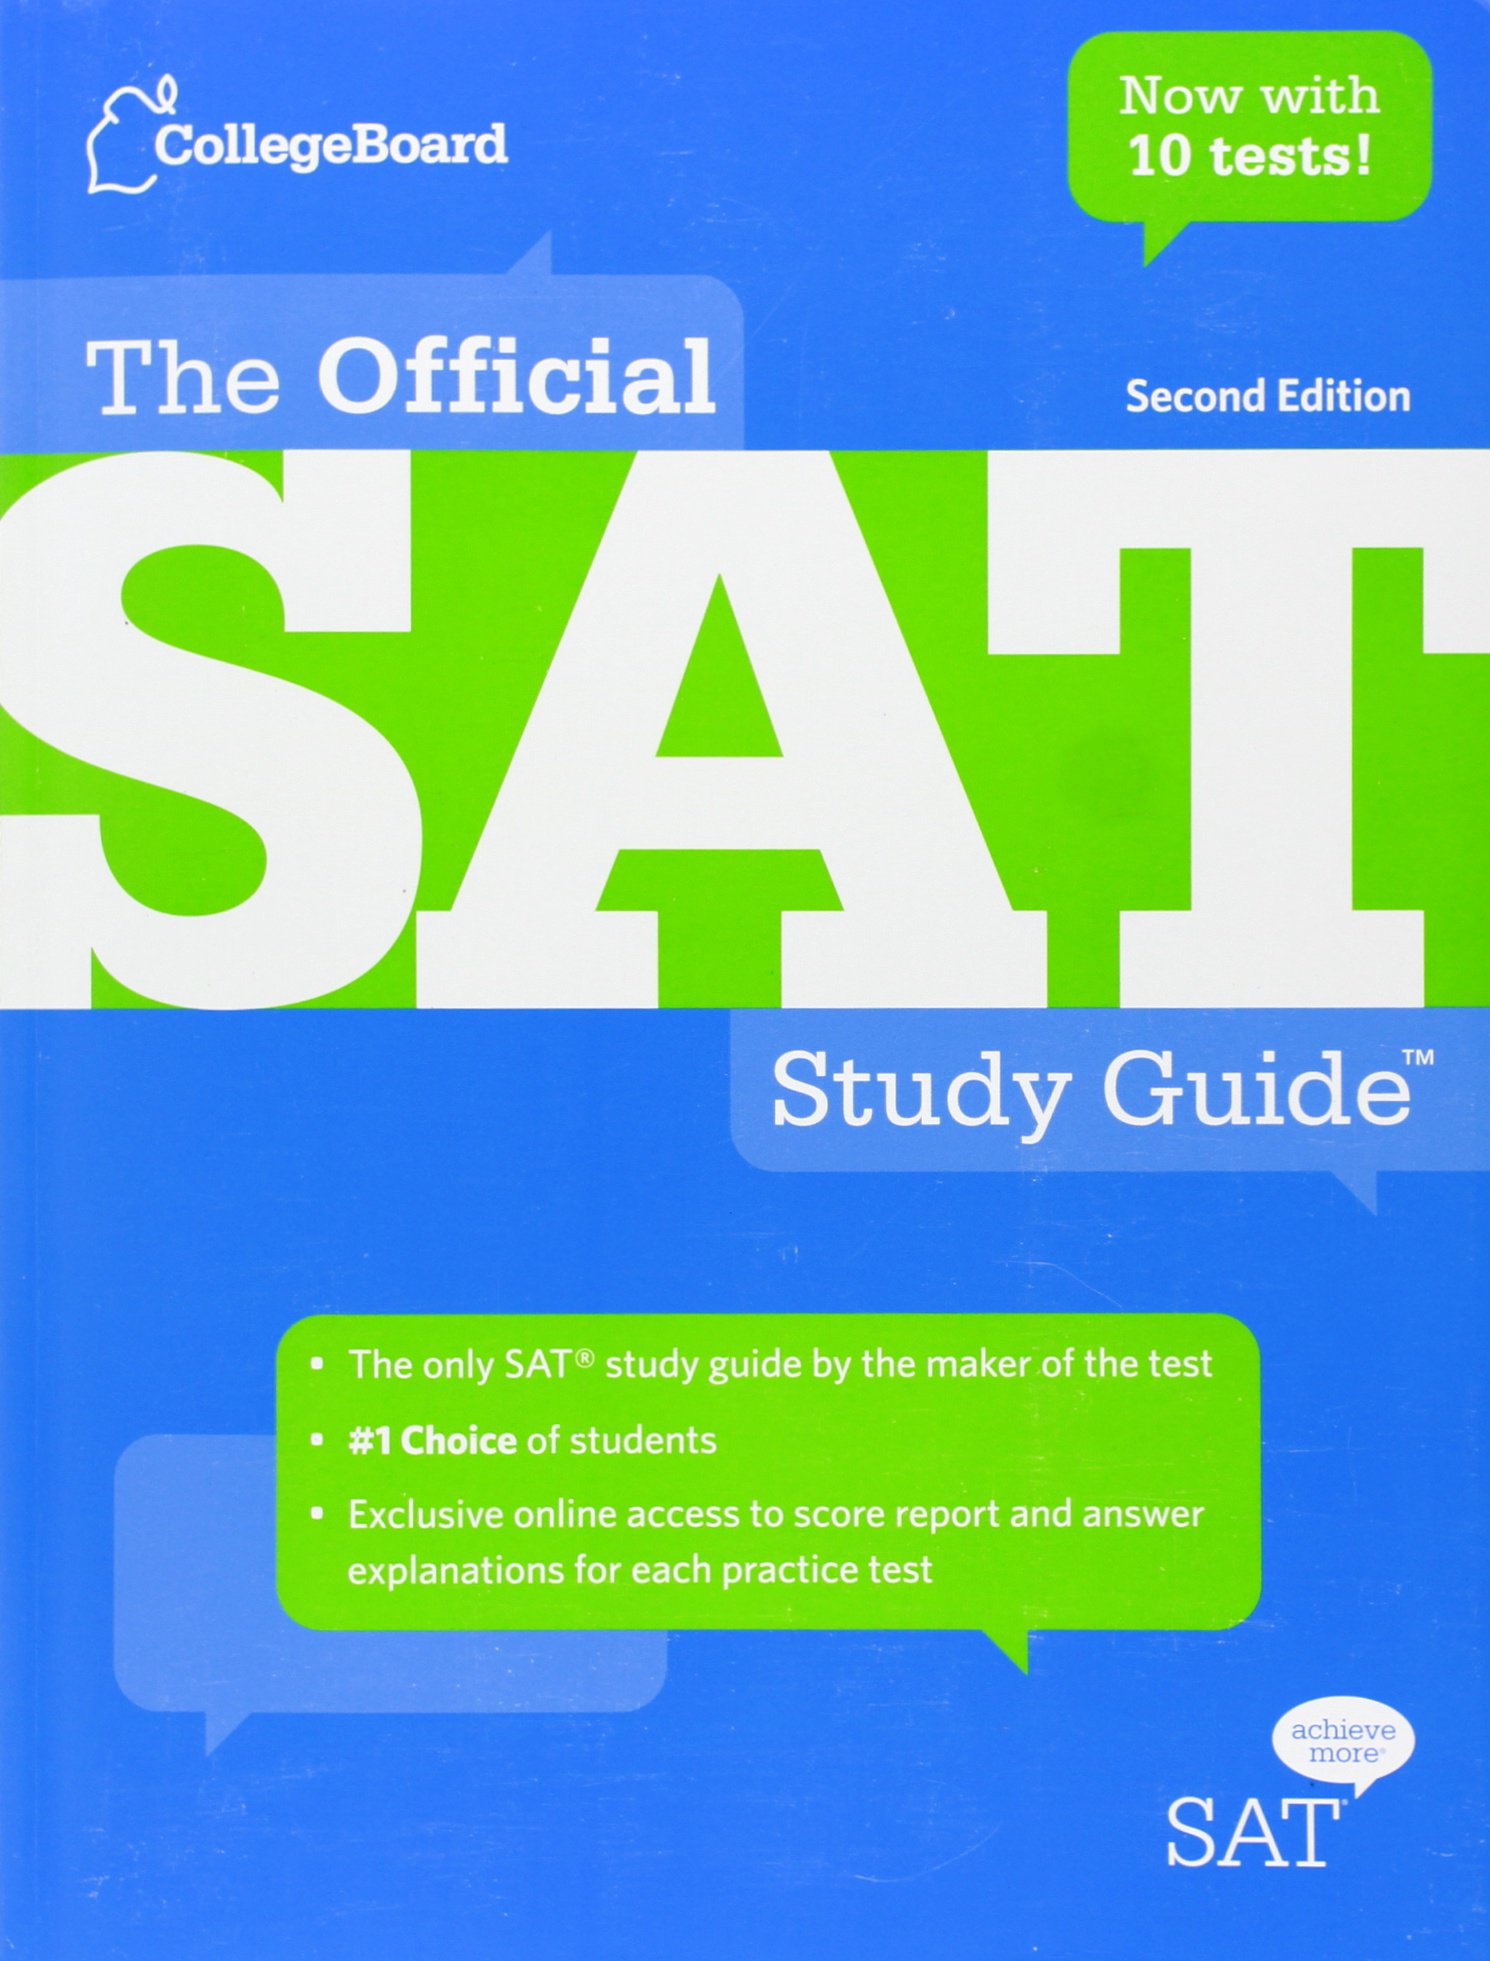 Studying for the PSAT buy studying SATs?